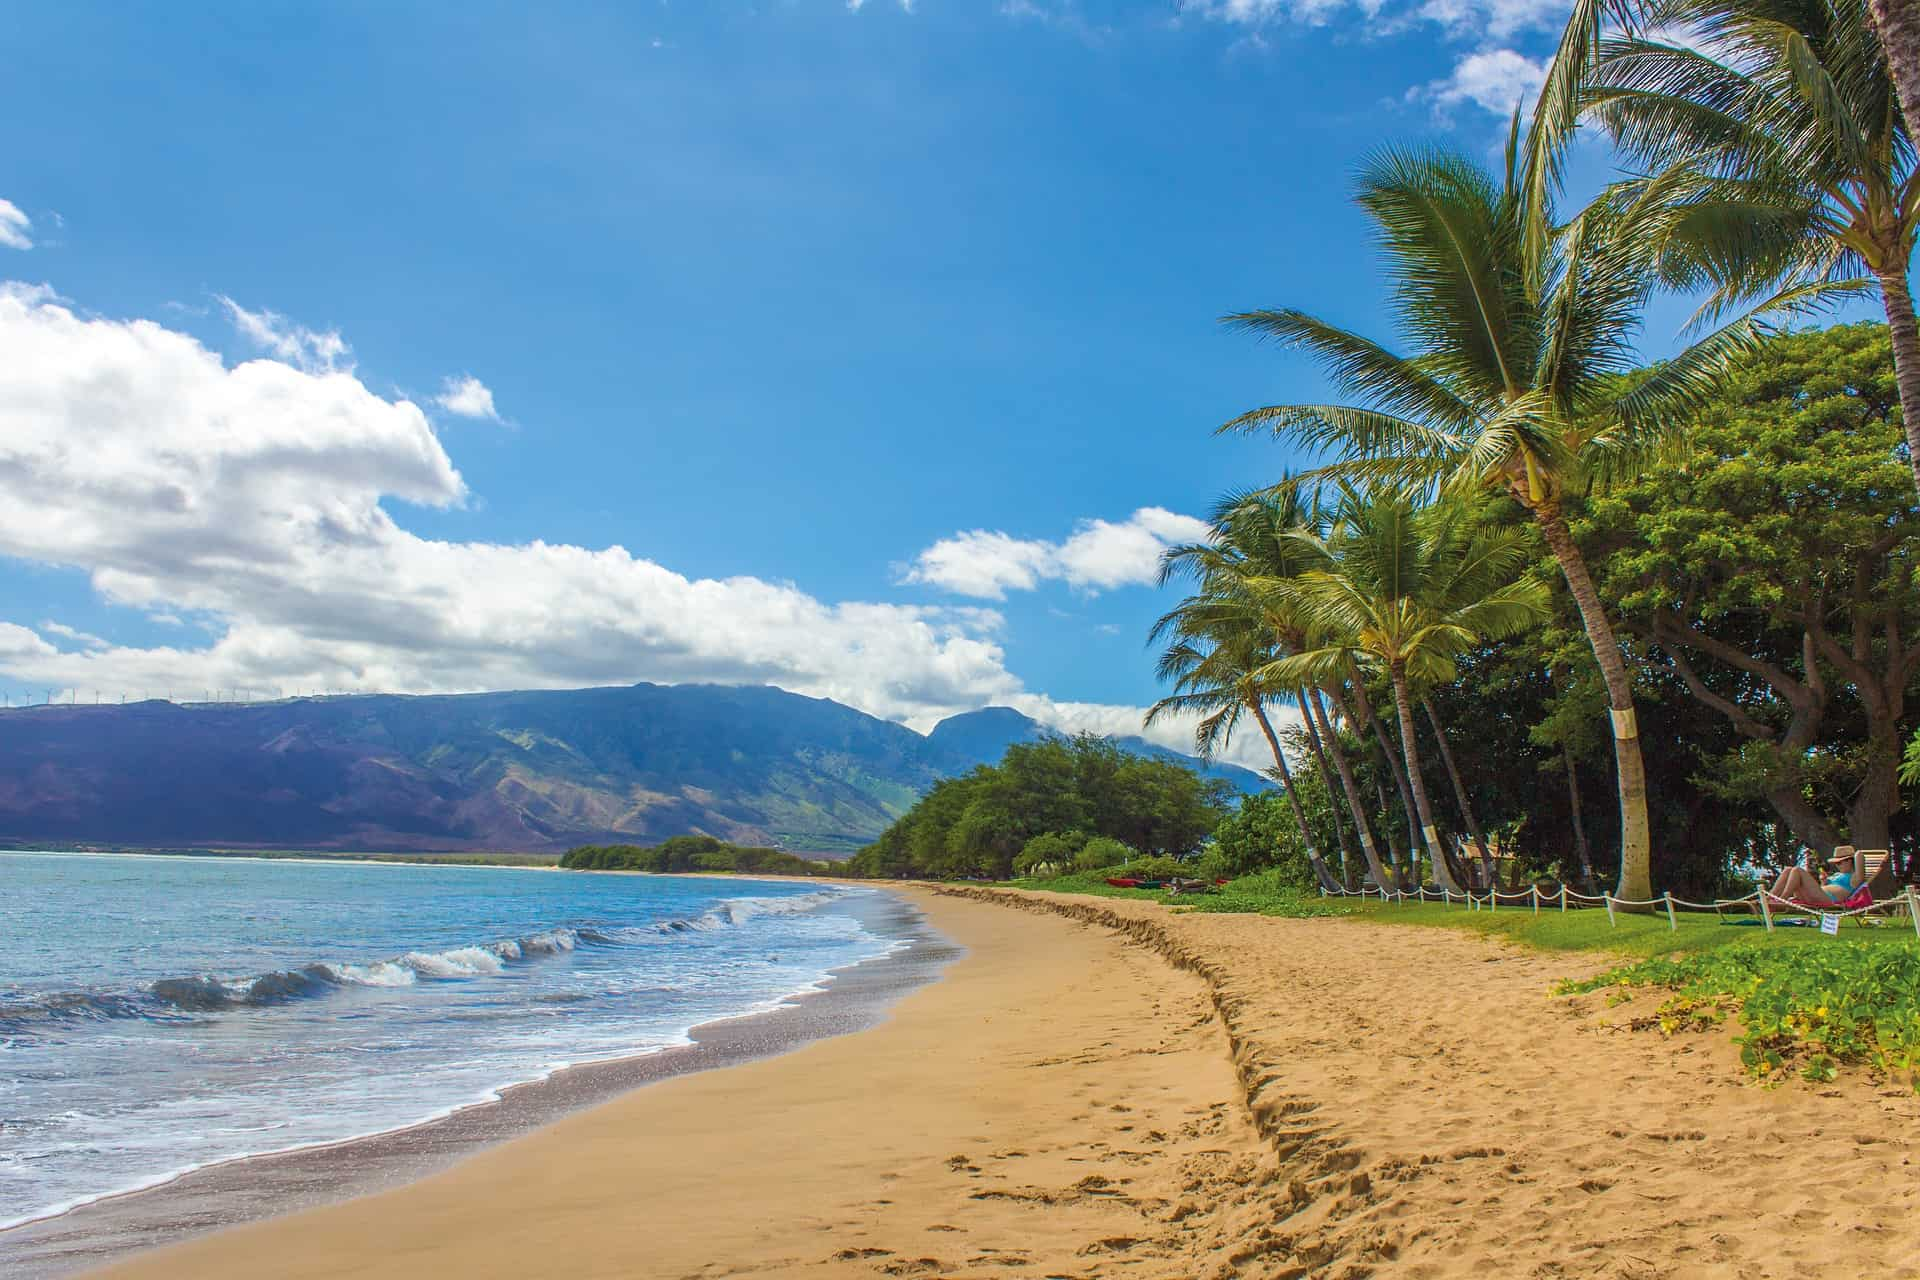 Maui, Hawaii - Best Family Beaches in the World